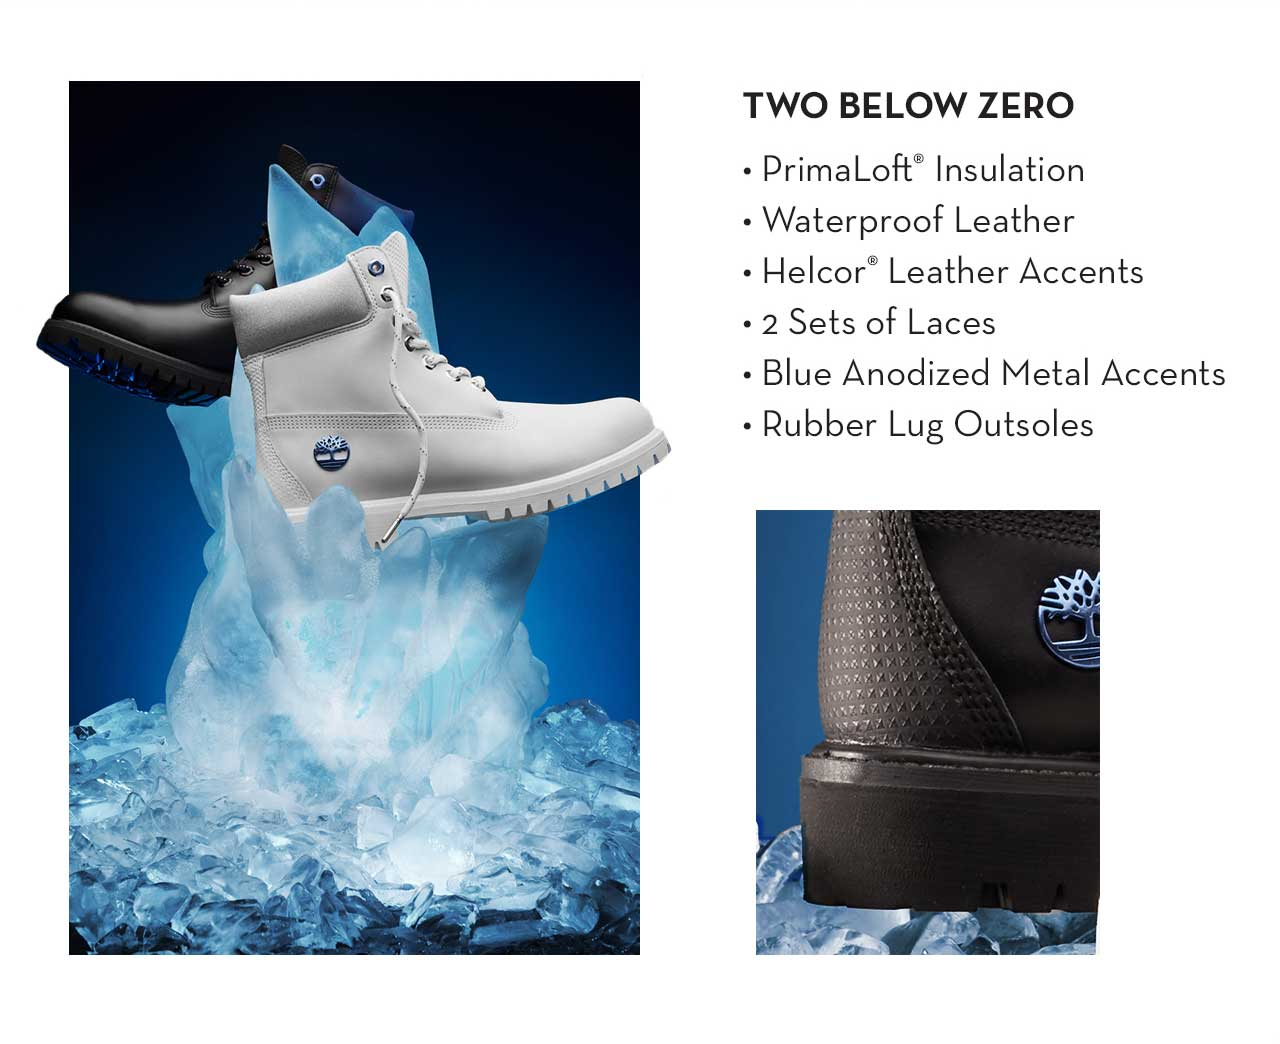 Two Below Zero - Primaloft Insulation - Waterproof Leather - Helcor Leather Accents - 2 Sets of Laces - Blue Anodized Metal Accents - Rubber Lug Outsoles